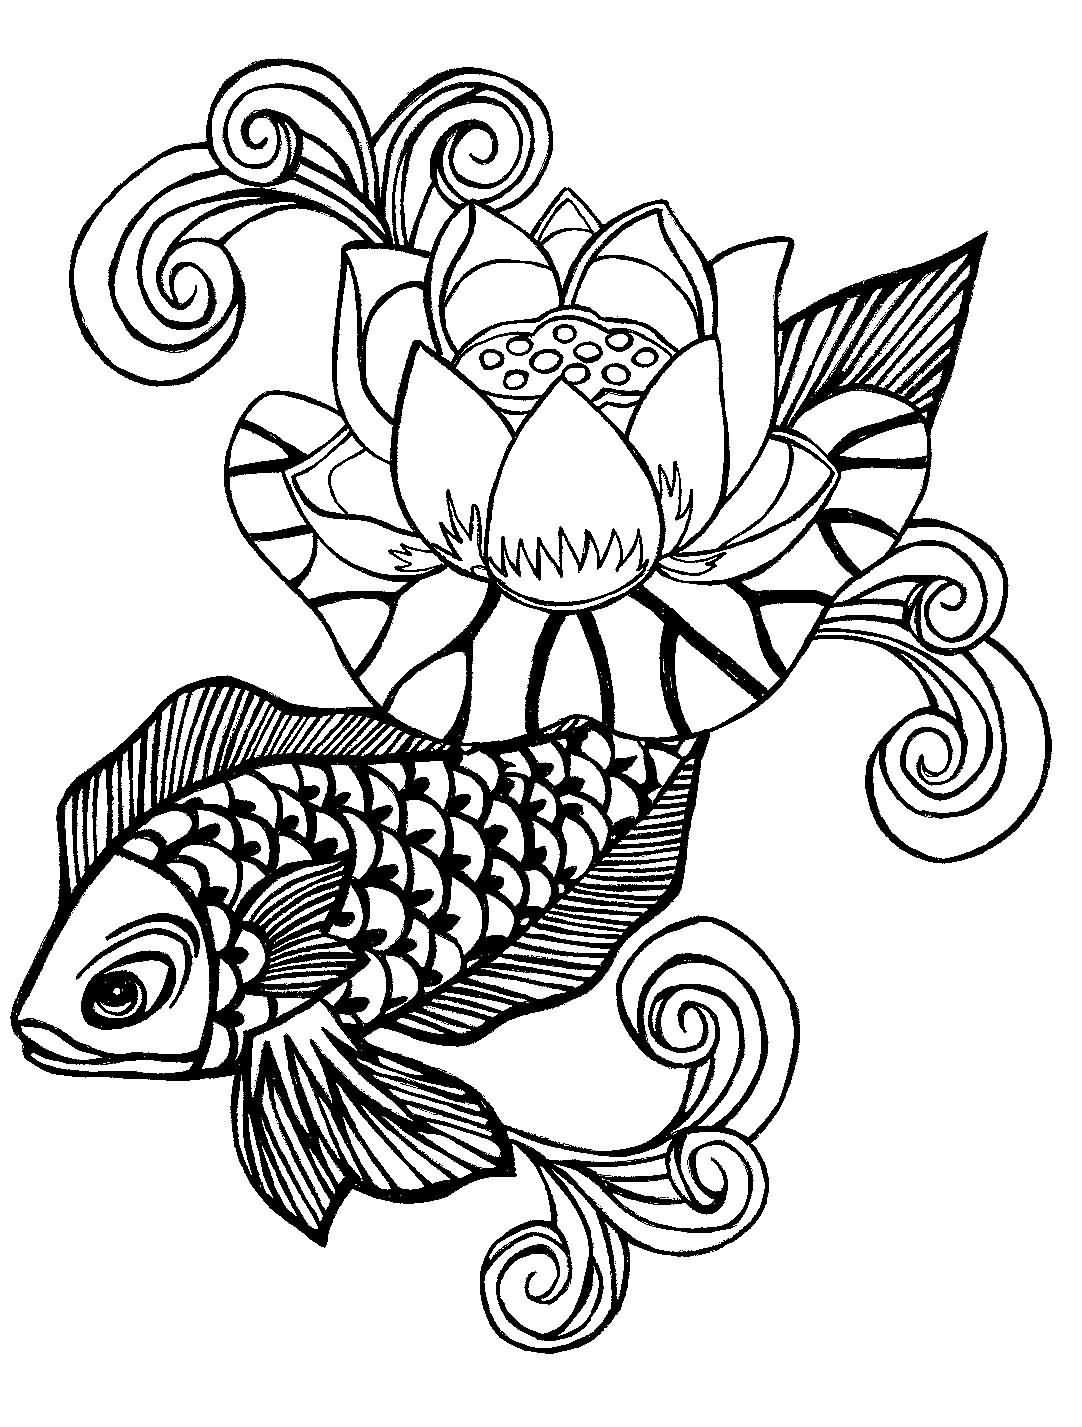 Black And White Tattoo Designs - Wiring Diagrams •